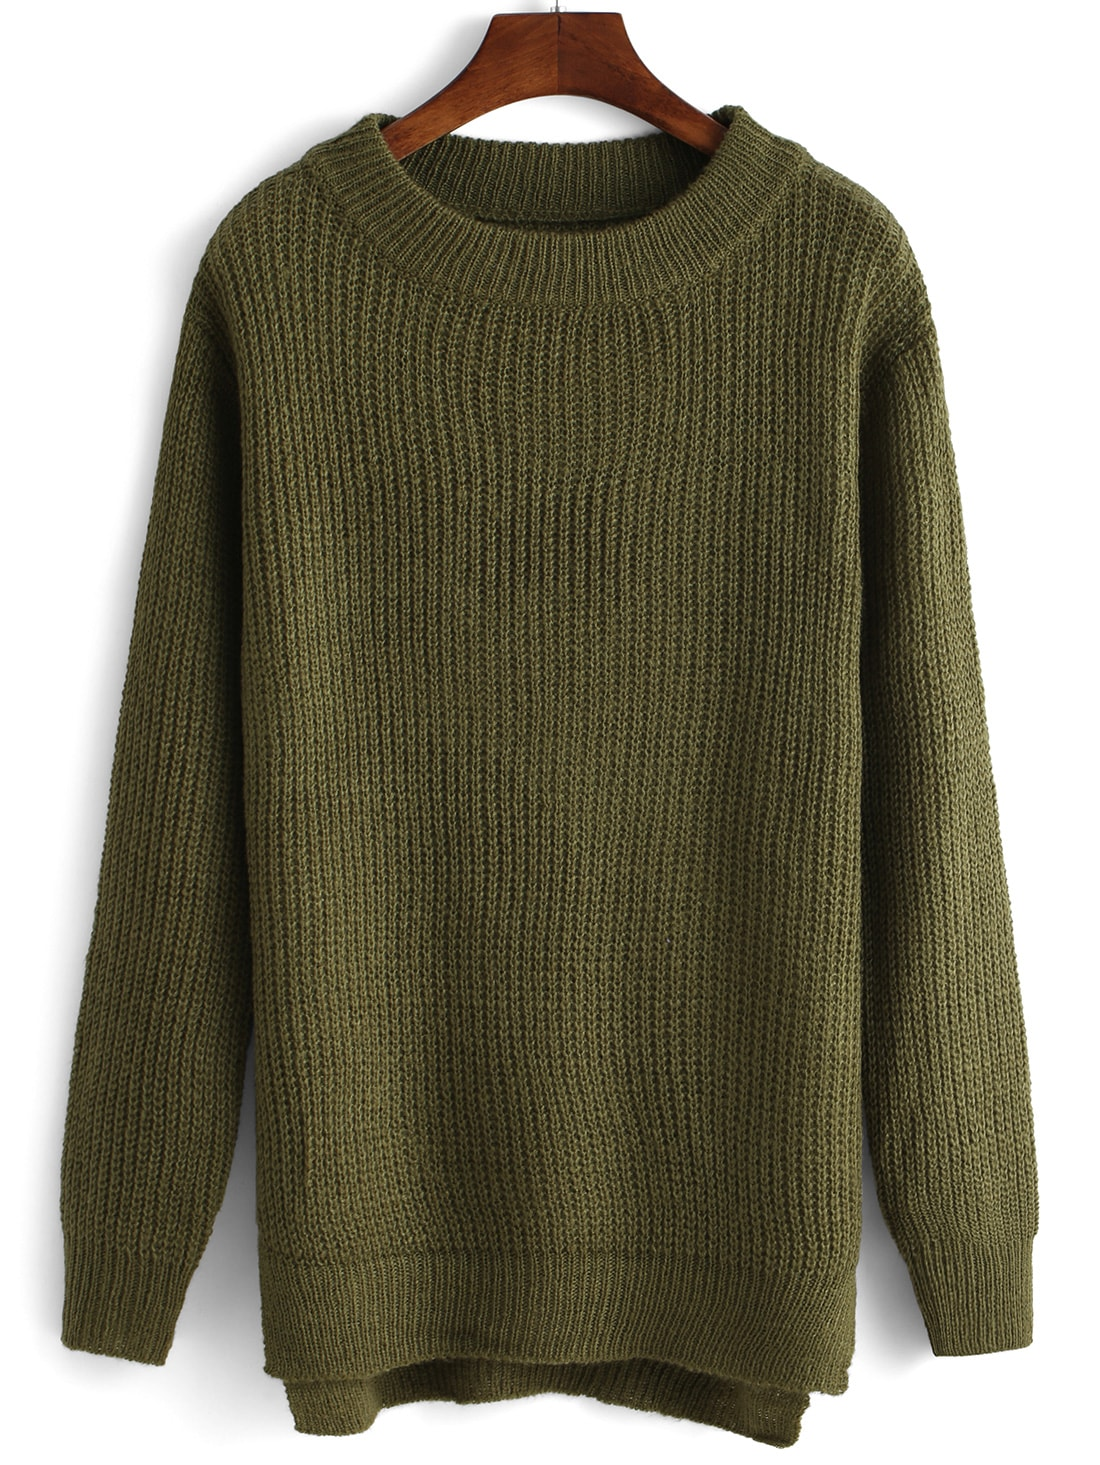 army green womens sweater. filter results. Type. Cardigans (25) Cardigans. Pullover sweaters (17) Pullover sweaters. Poncho sweaters (6) Poncho sweaters. Bikini swim bottoms (4) Bikini swim bottoms. Bikini swim tops (3) Bikini swim tops. fashion jackets (3) fashion jackets.